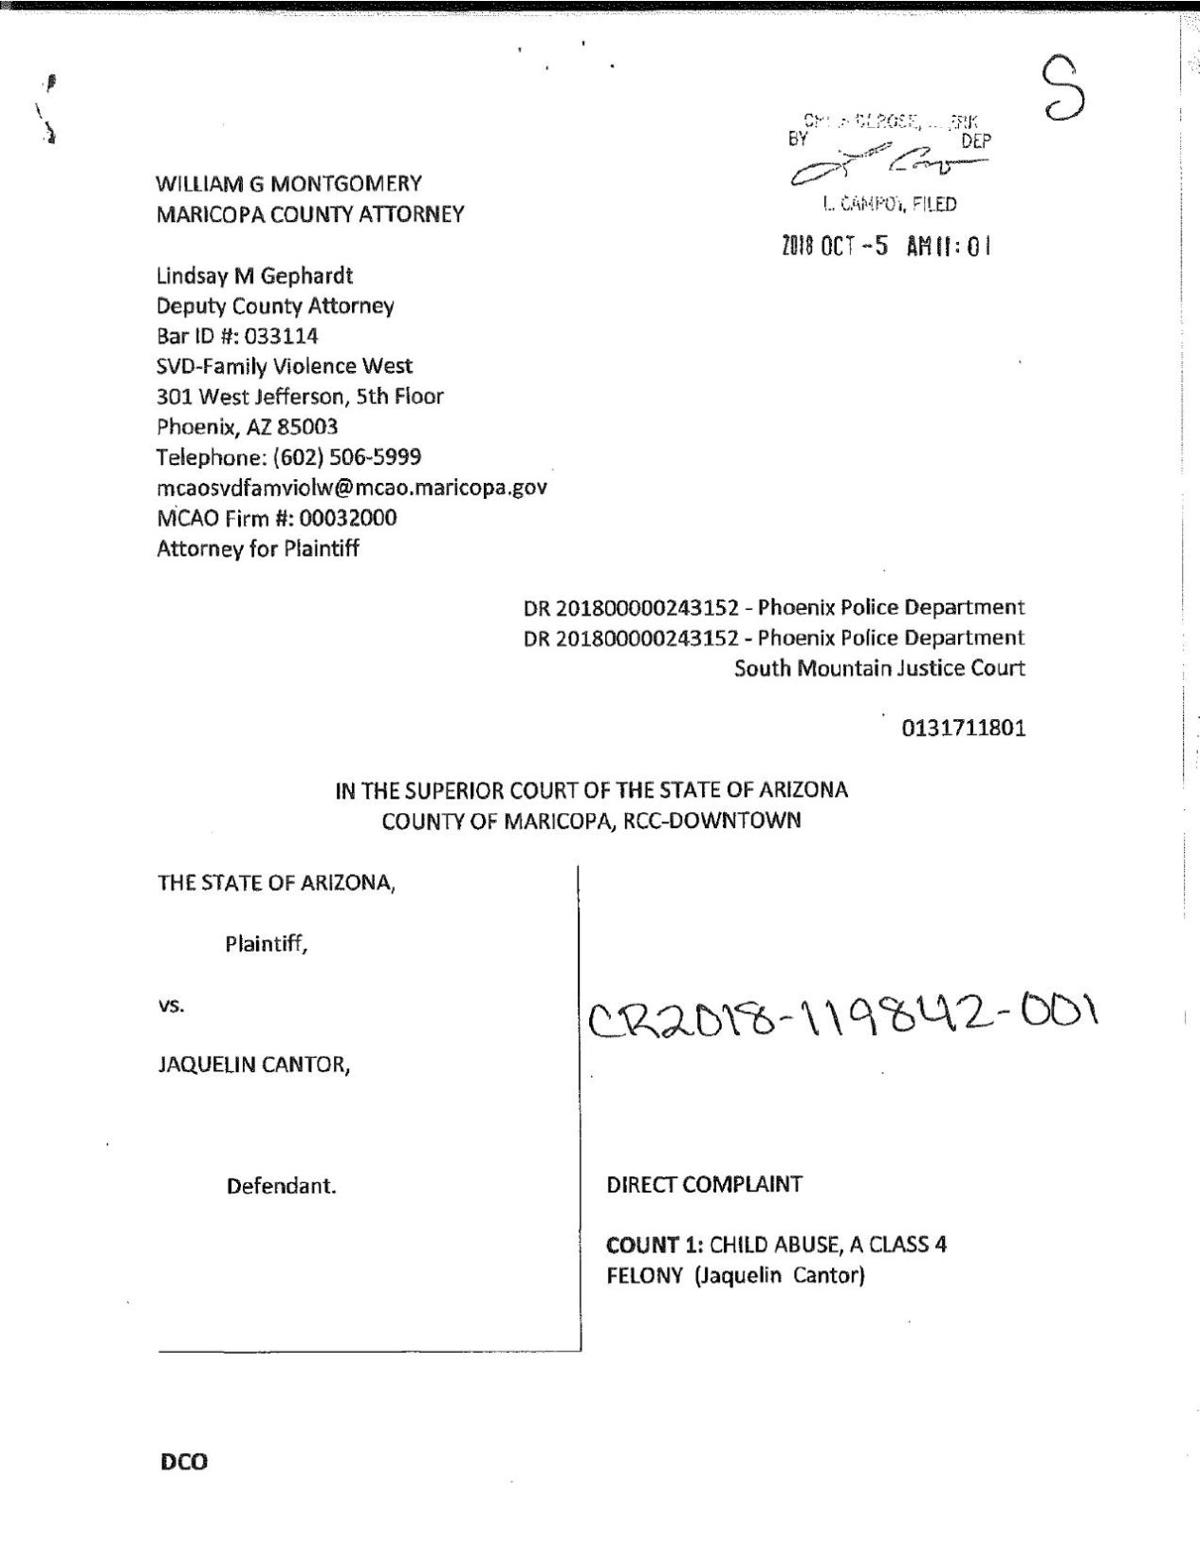 Jaquelin Cantor's court documents